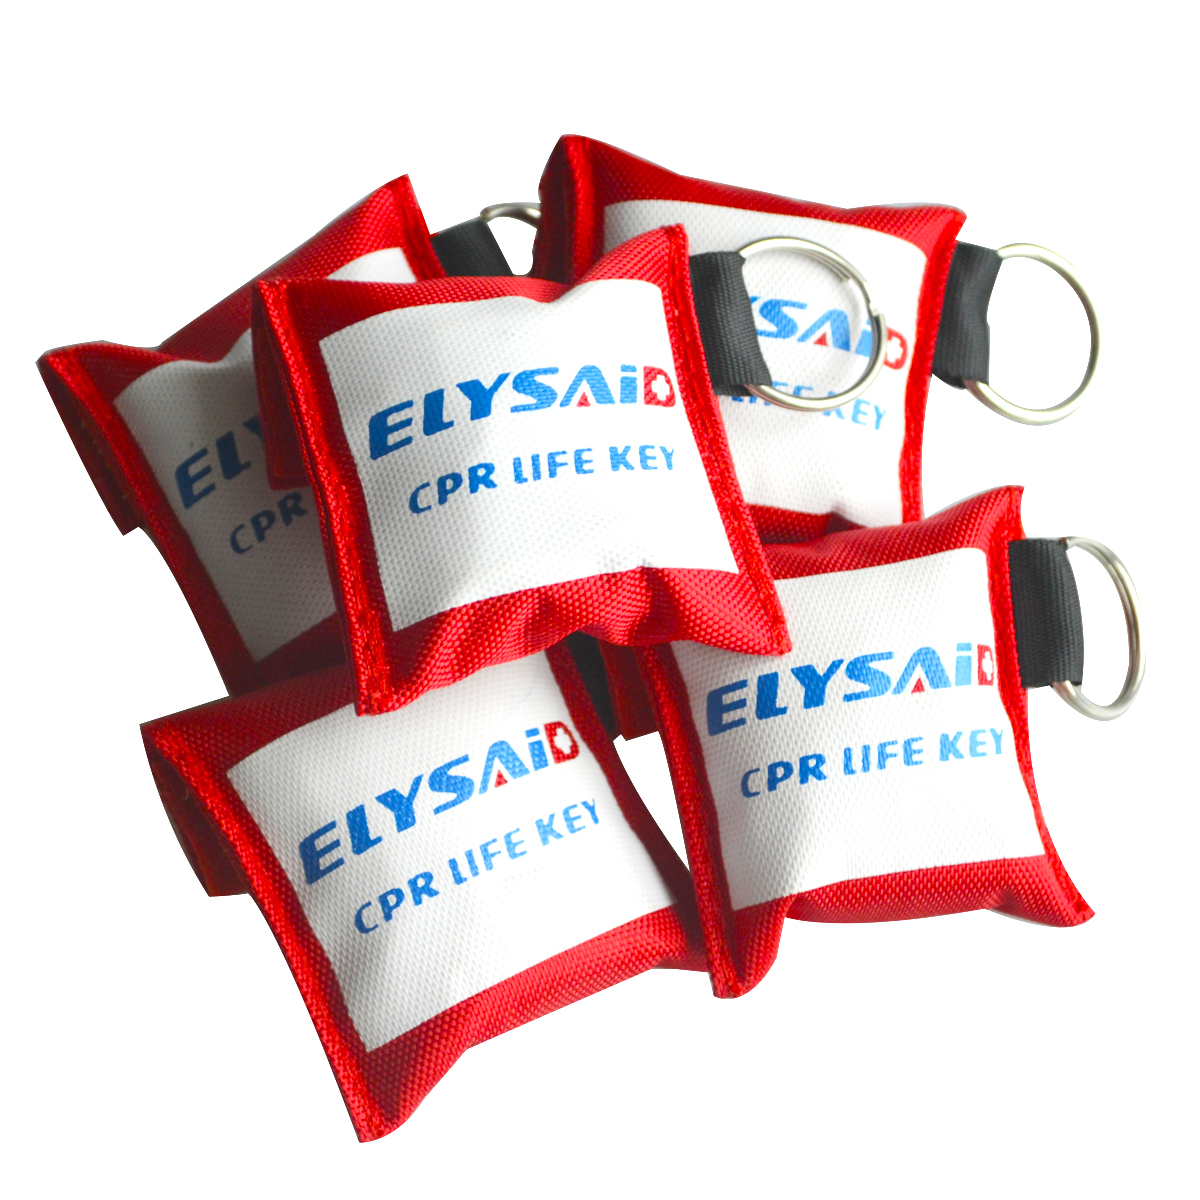 70pcs Professional First Aid CPR Breathing Mask W/ Latex Gloves Protect Rescuers Artificial Respiration With One-way Valve Tools